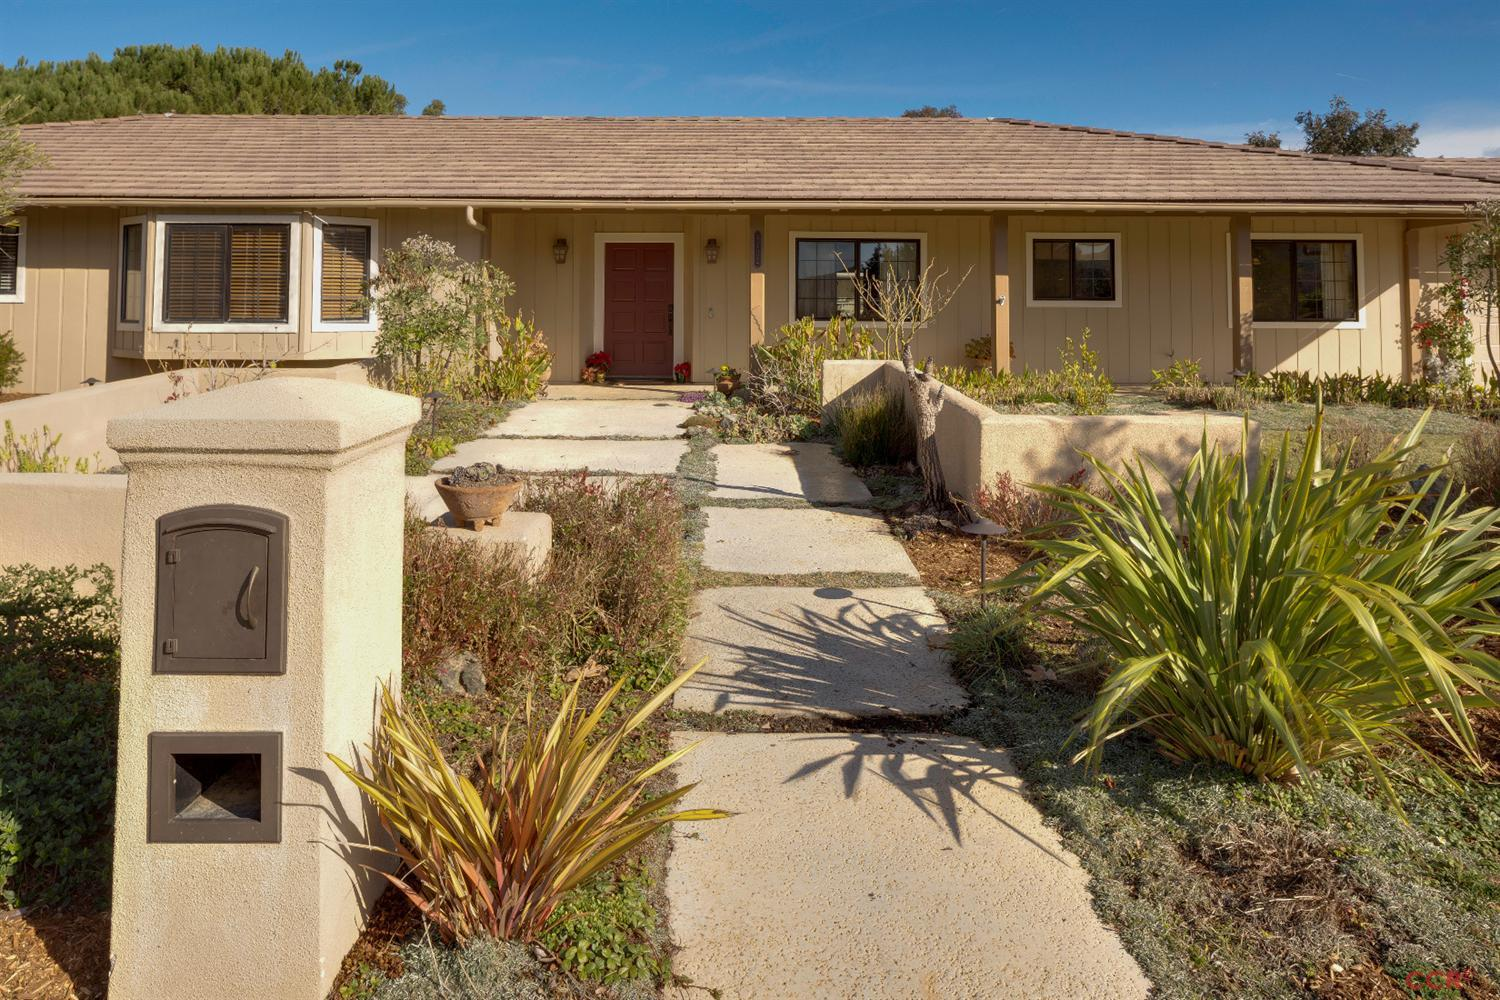 4732 Paint Horse Trail, Orcutt, California 93455